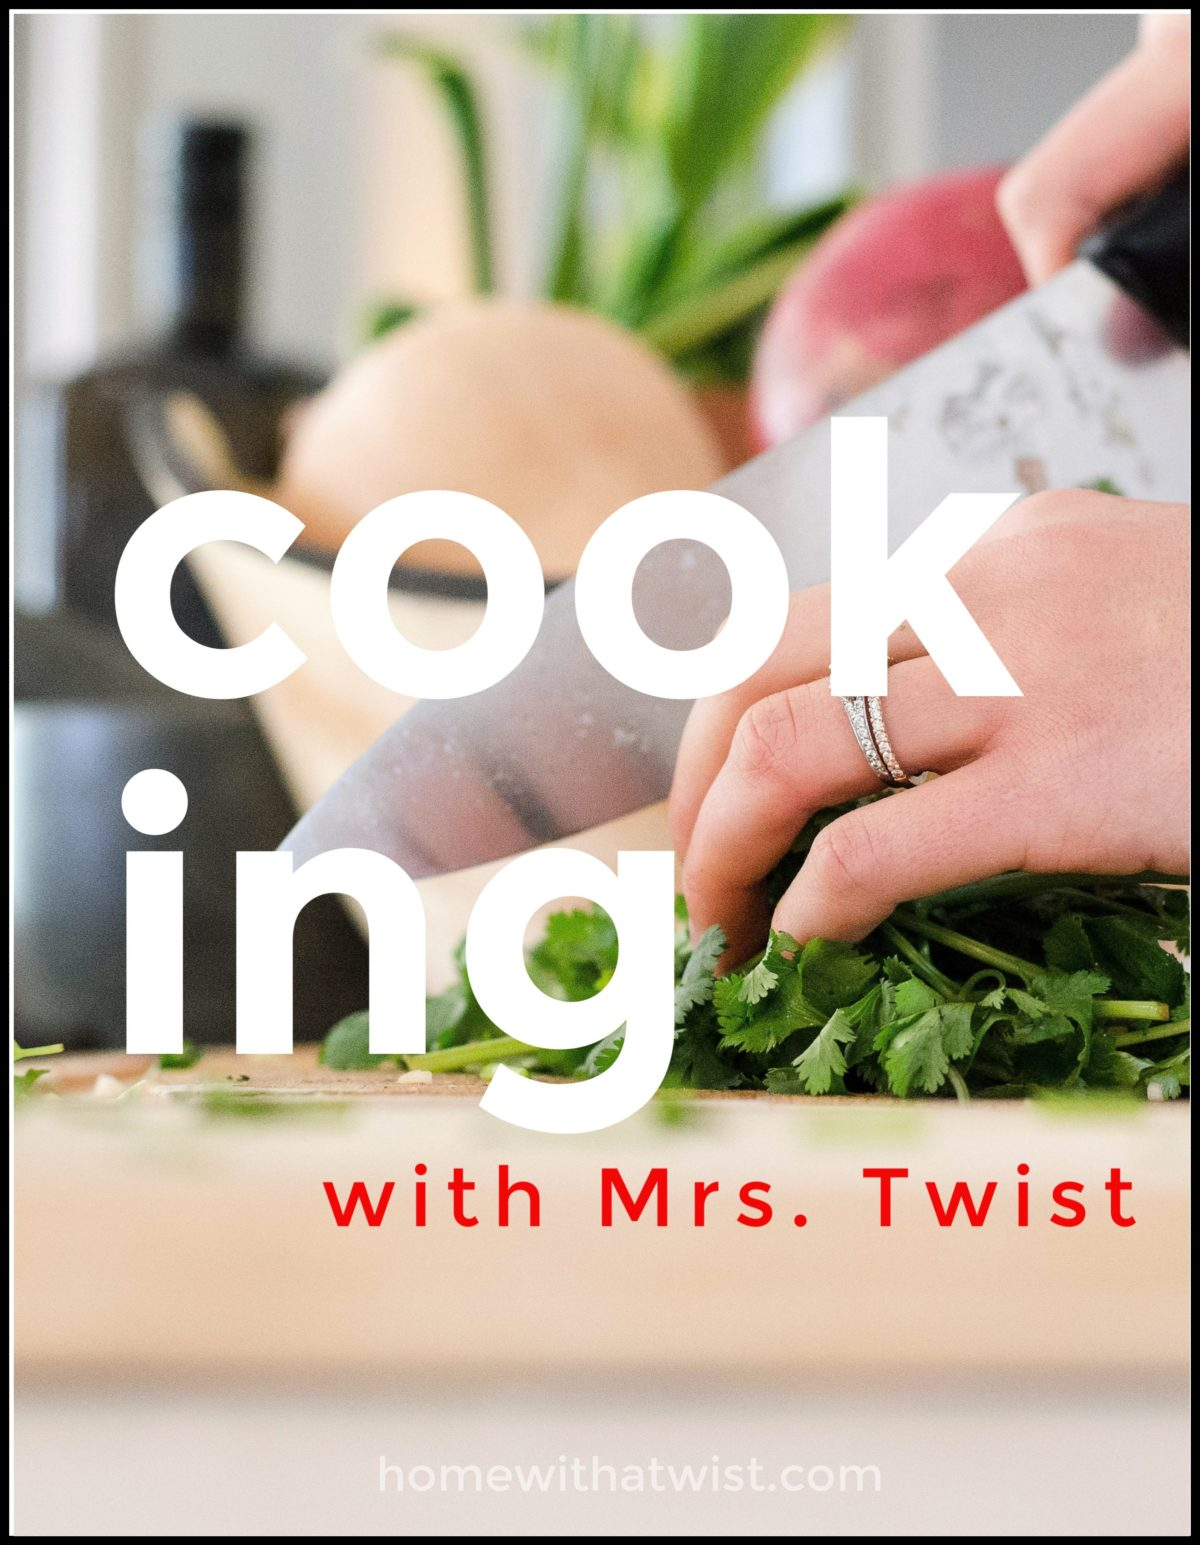 Cooking with Mrs. Twist – The Instapot